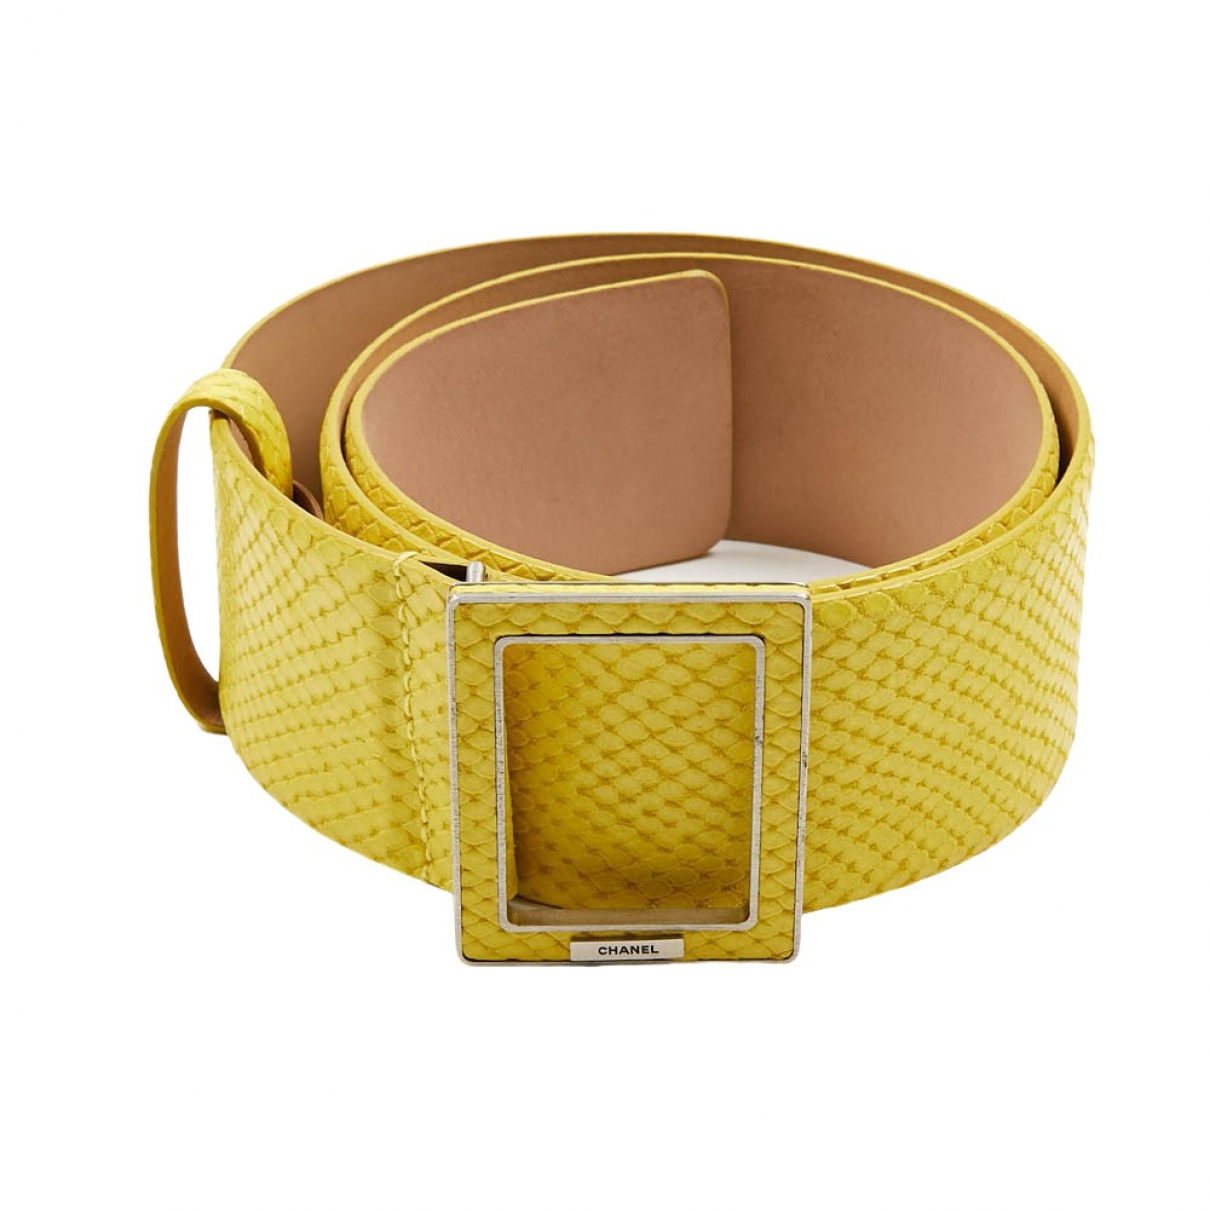 Chanel \N Yellow Leather belt for Women 75 cm